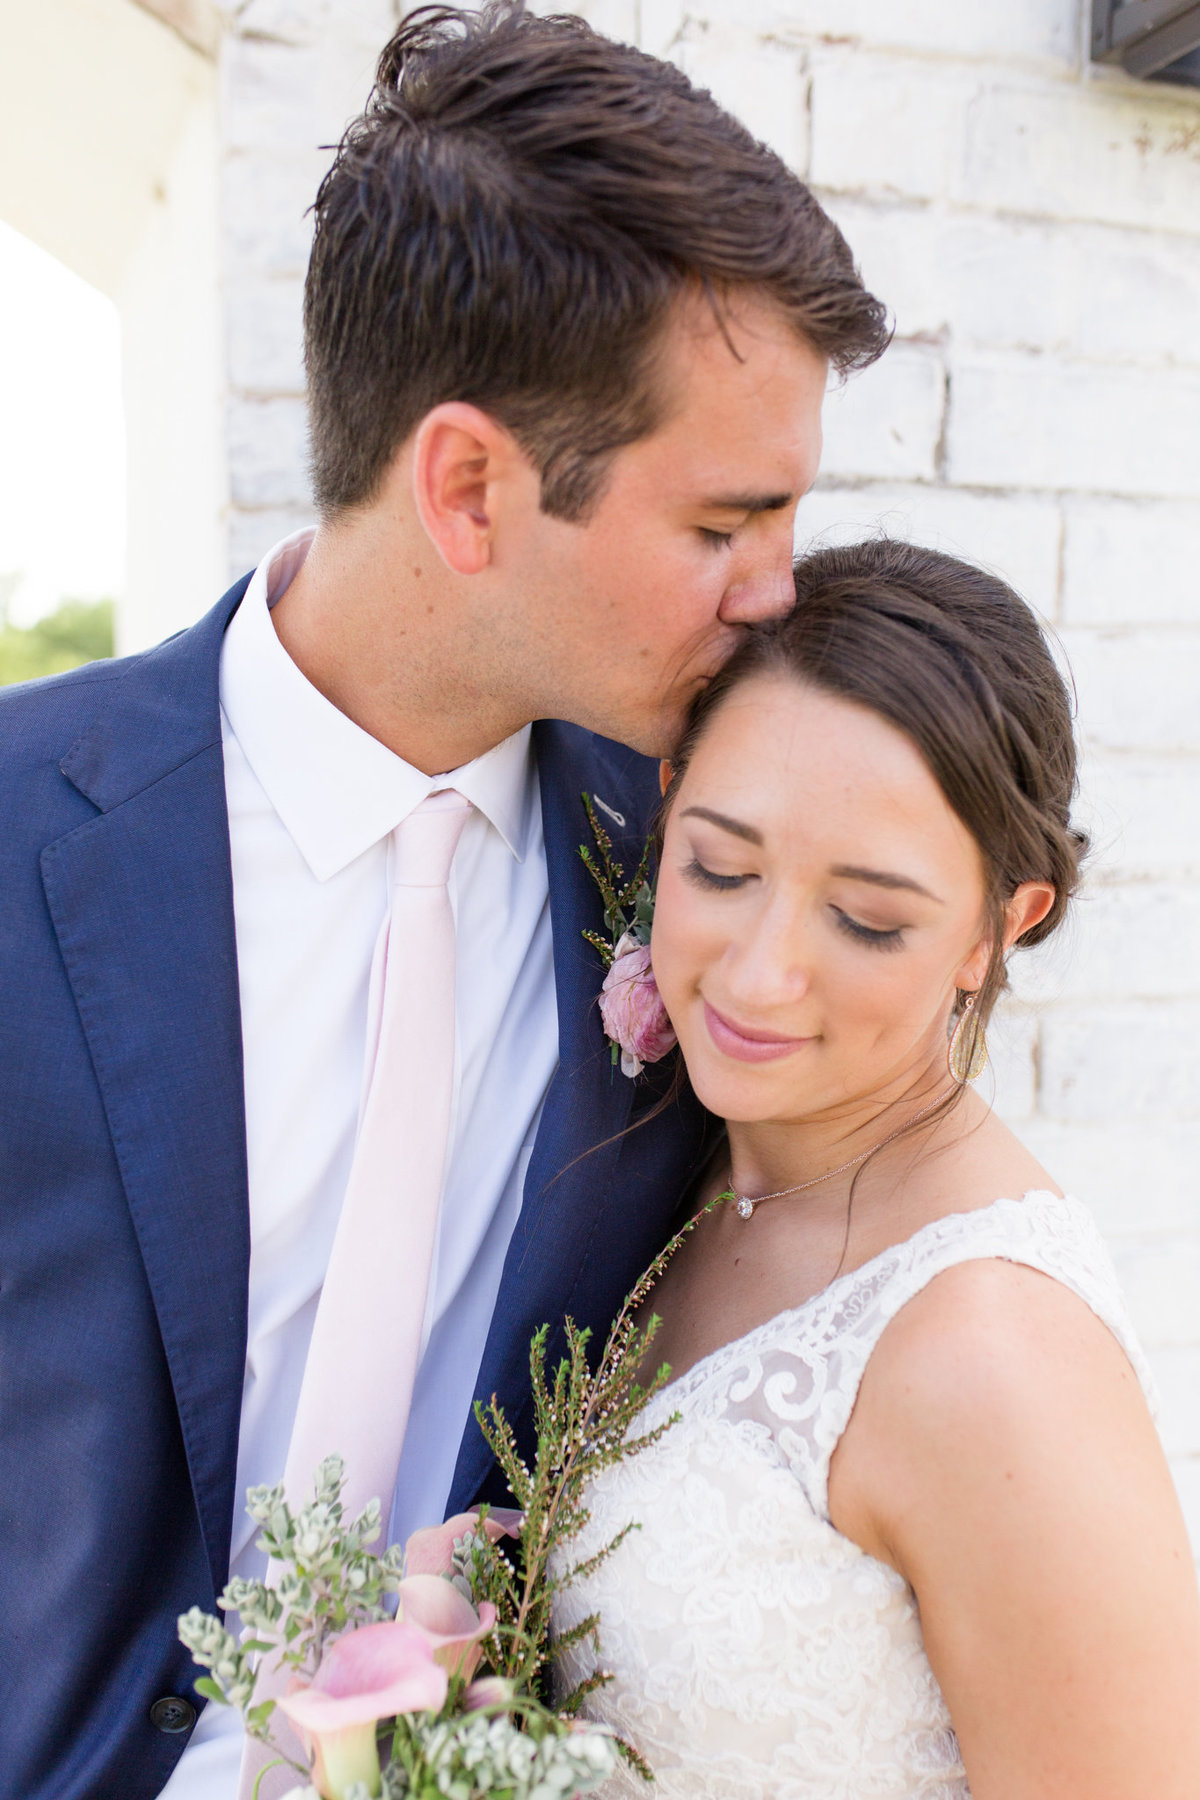 Grand Ivory Wedding| Dallas, Texas | DFW Wedding Photographer | Sami Kathryn Photography-2